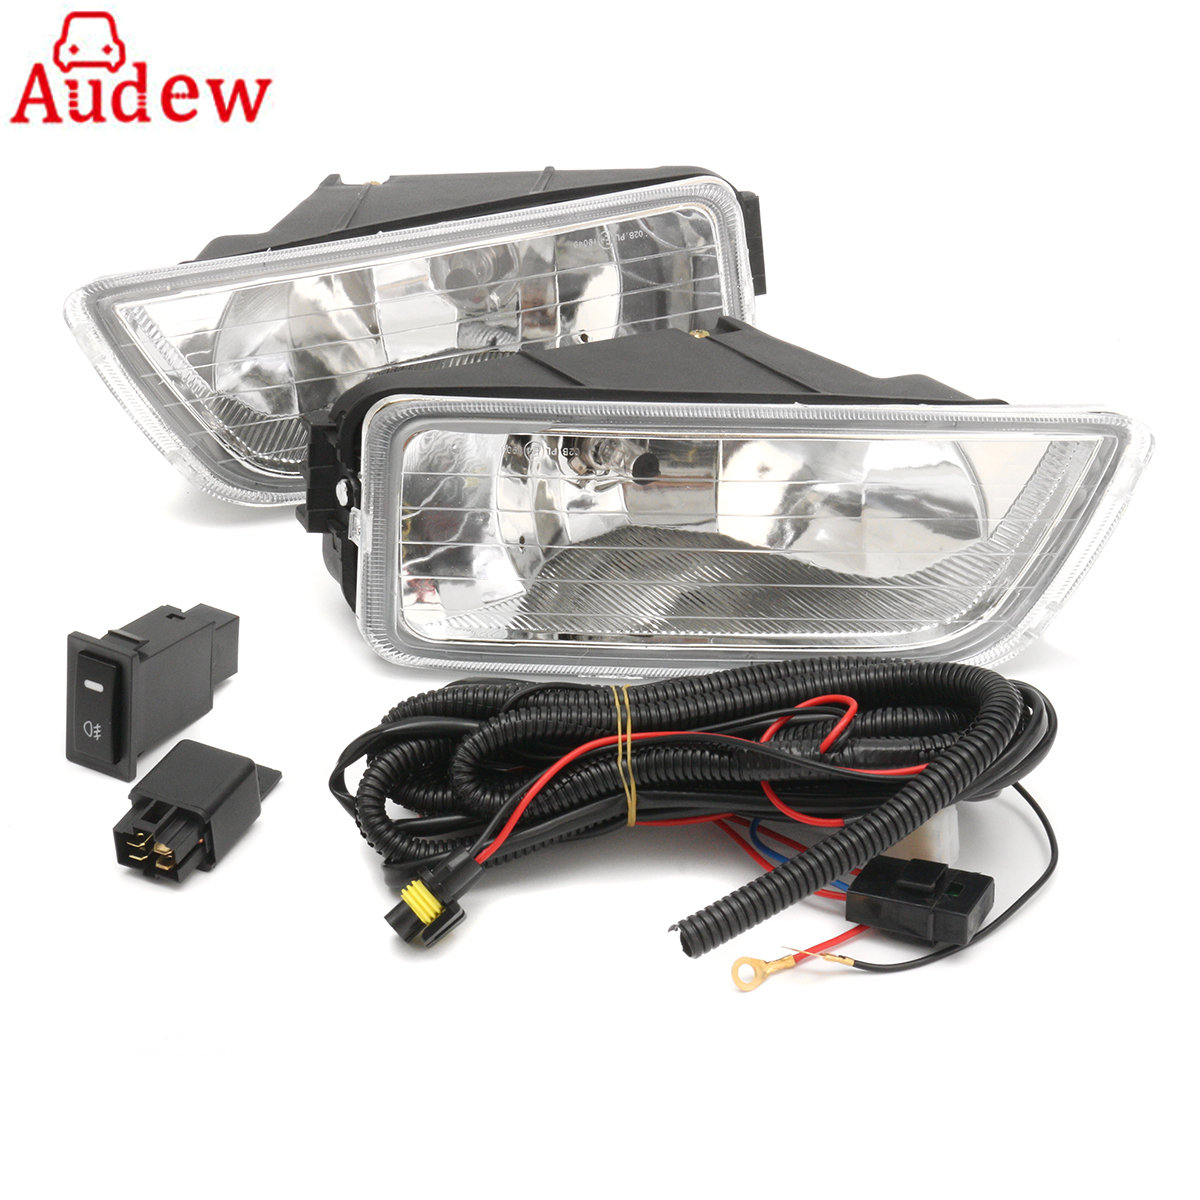 2Pcs H11 55W Car Front Side Fog Lamp Light  Assembly With Wiring Harness and accessories For Honda/Accord 2003-2007 12v 55w car fog light assembly for ford focus hatchback 2009 2010 2011 front fog light lamp with harness relay fog light